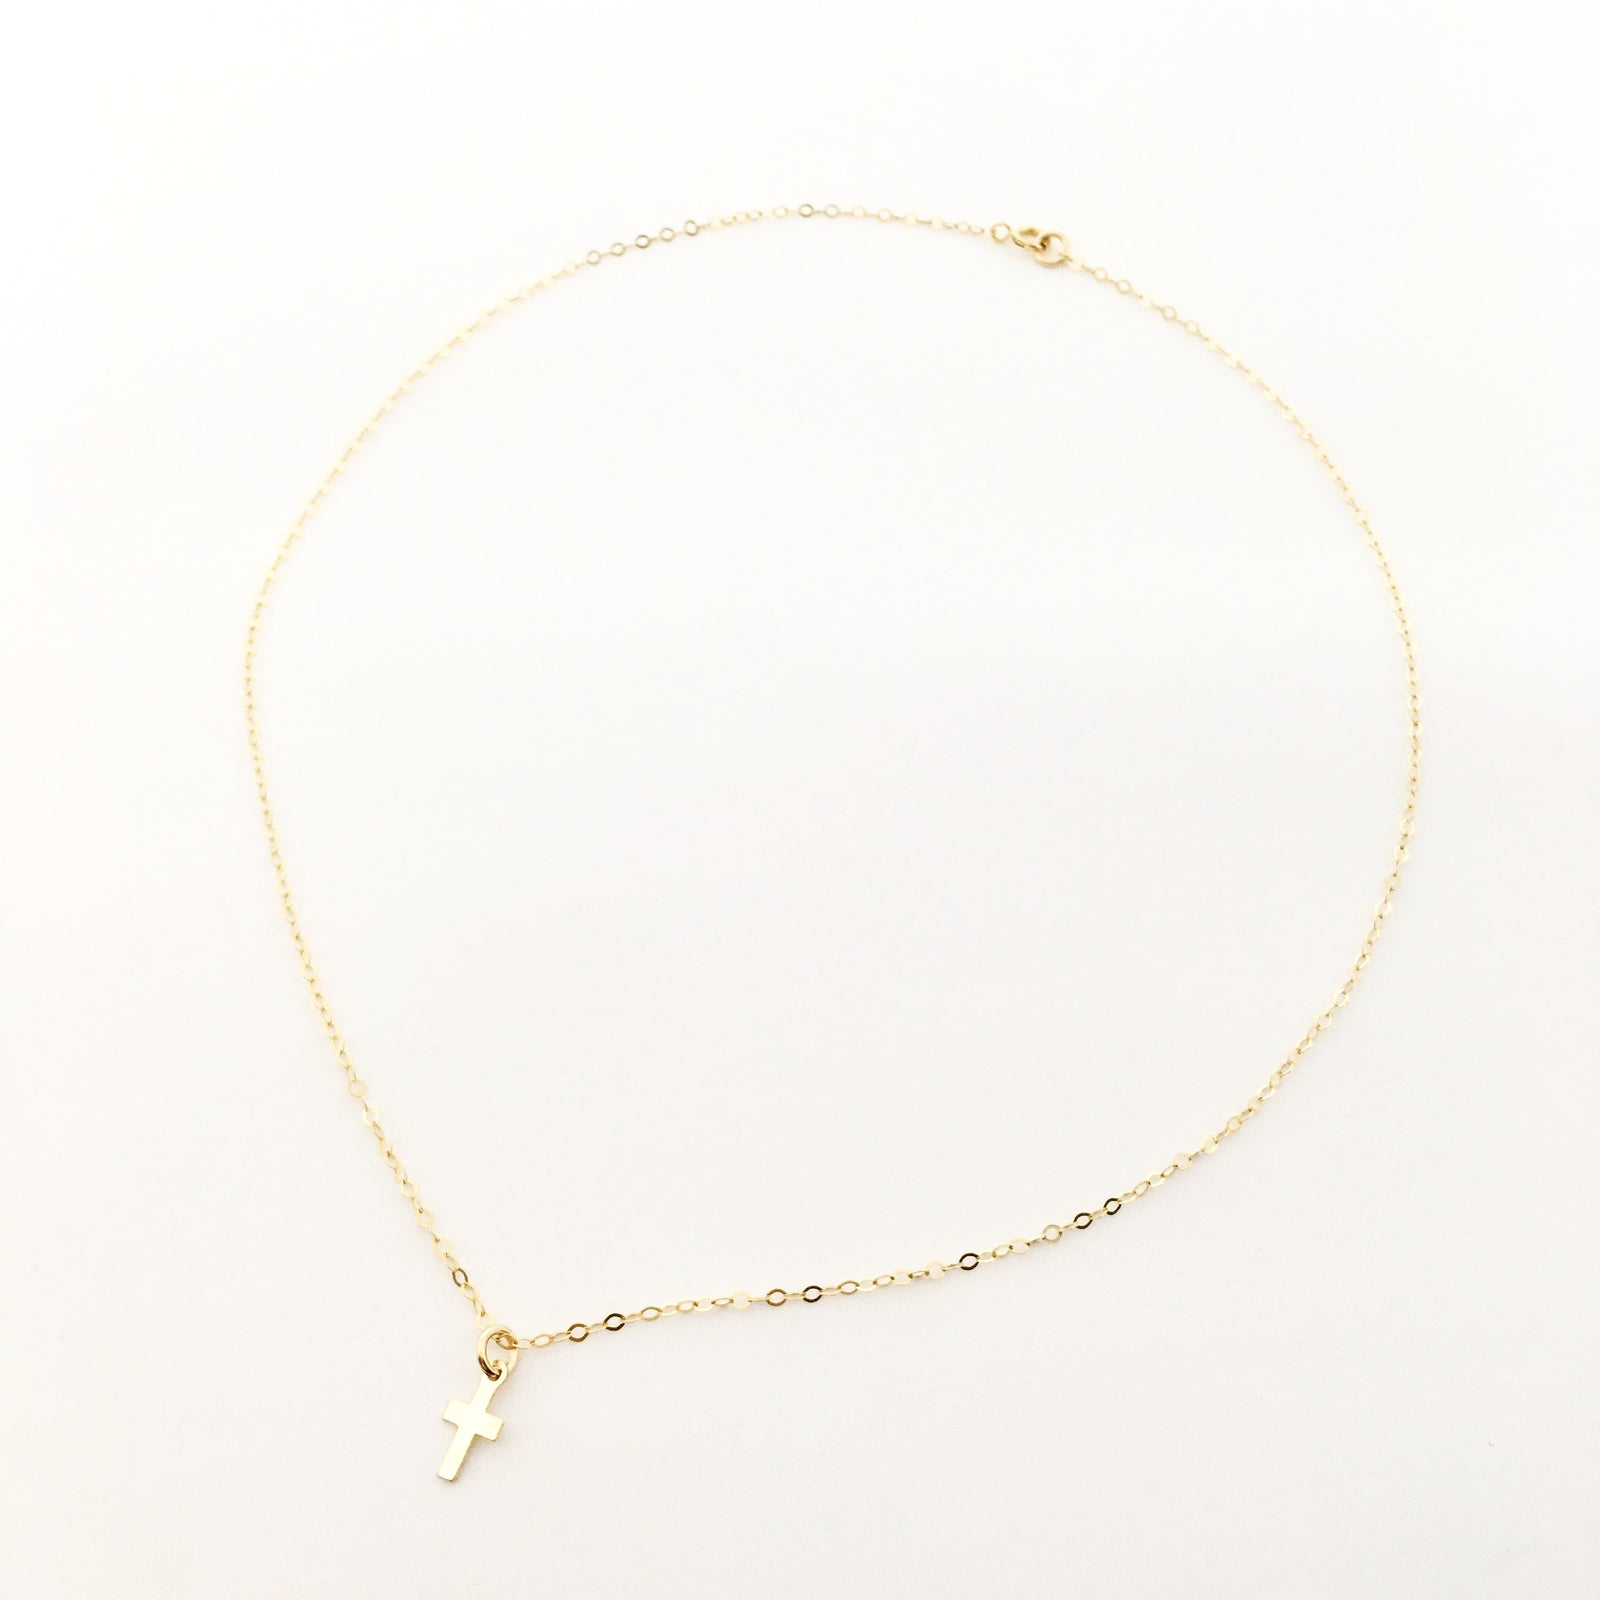 DAINTY CROSS NECKLACE | 14K GOLD-FILLED